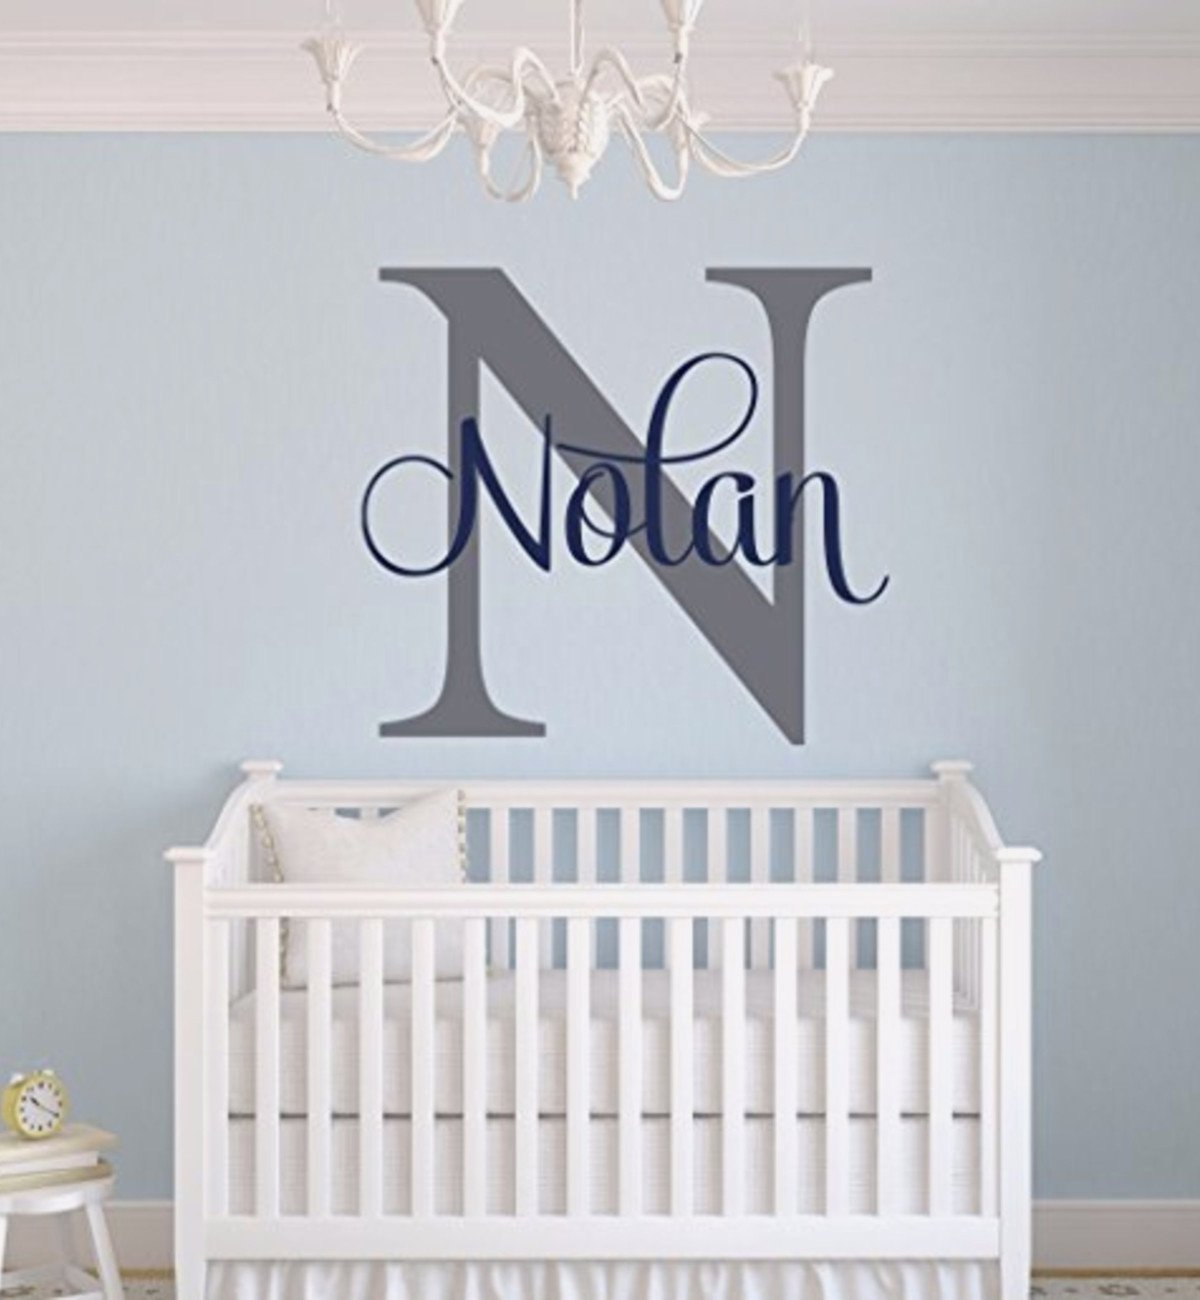 Wall Decor for Baby Rooms Unique Unique Baby Boy Nursery themes and Decor Ideas Involvery Munity Blog